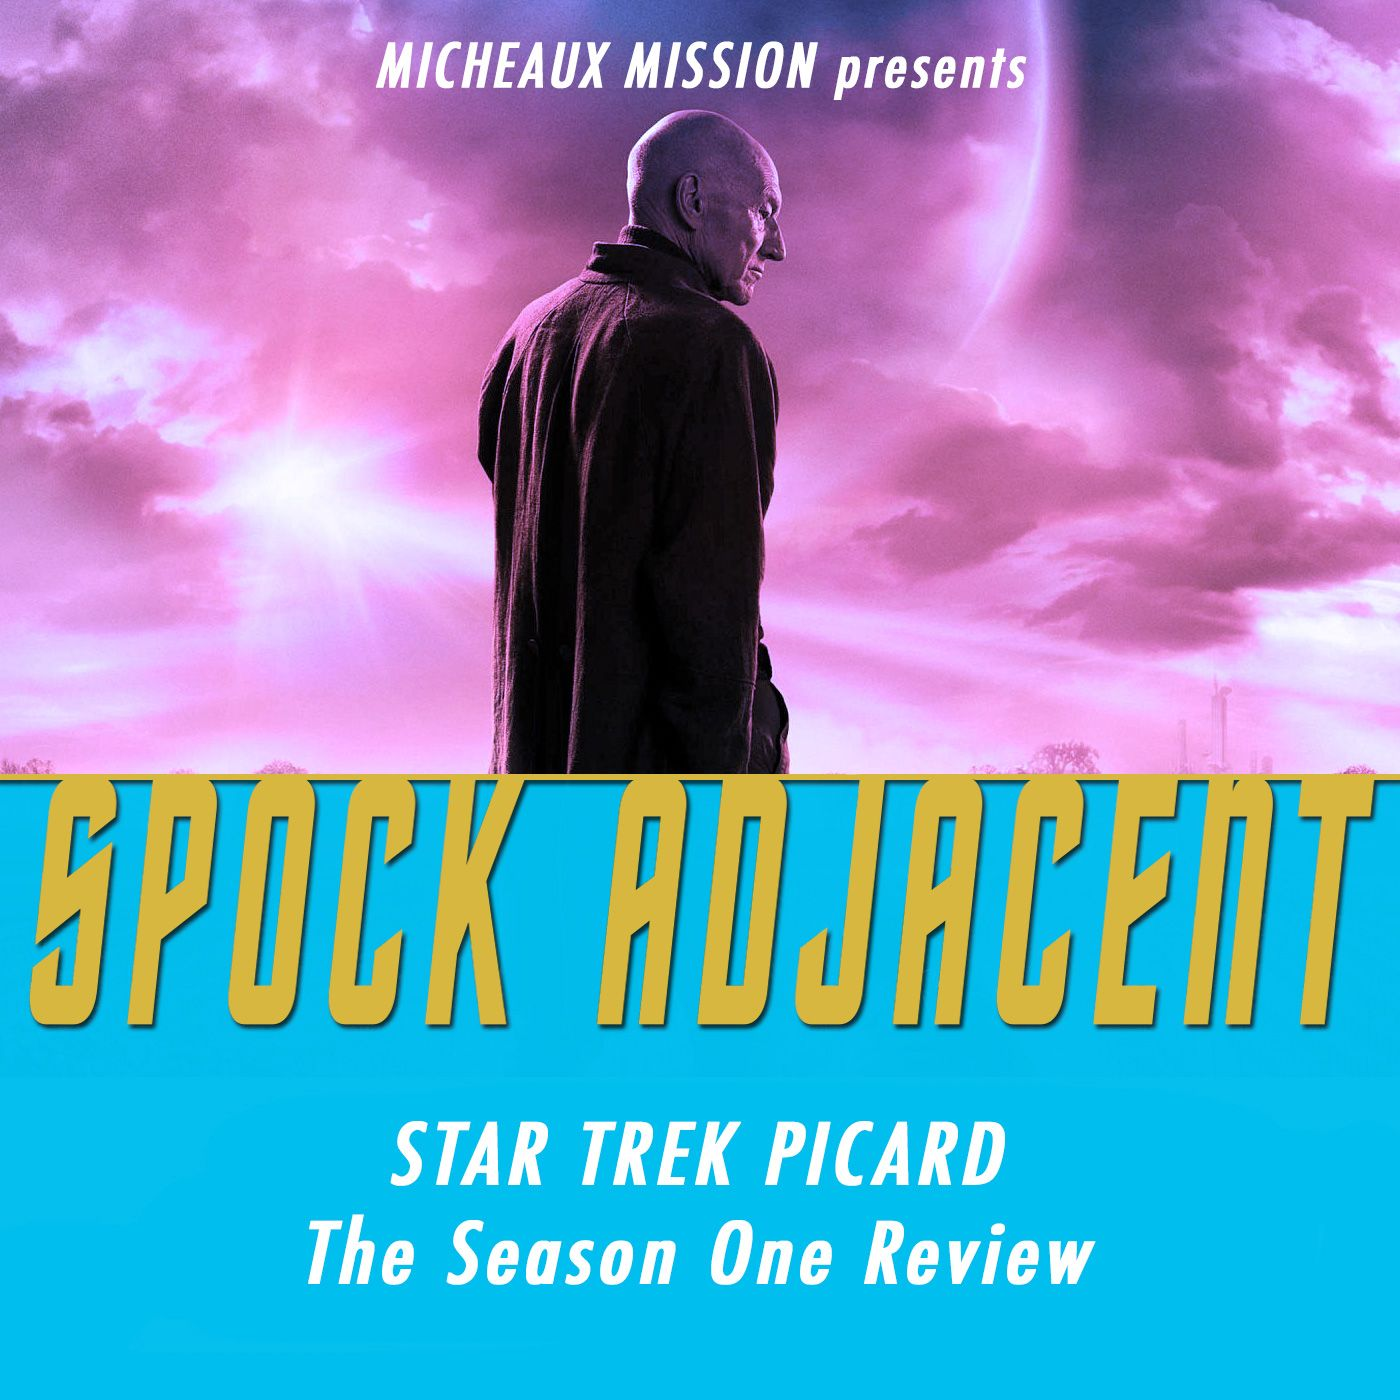 SPOCK ADJACENT - Star Trek Picard S1 Review